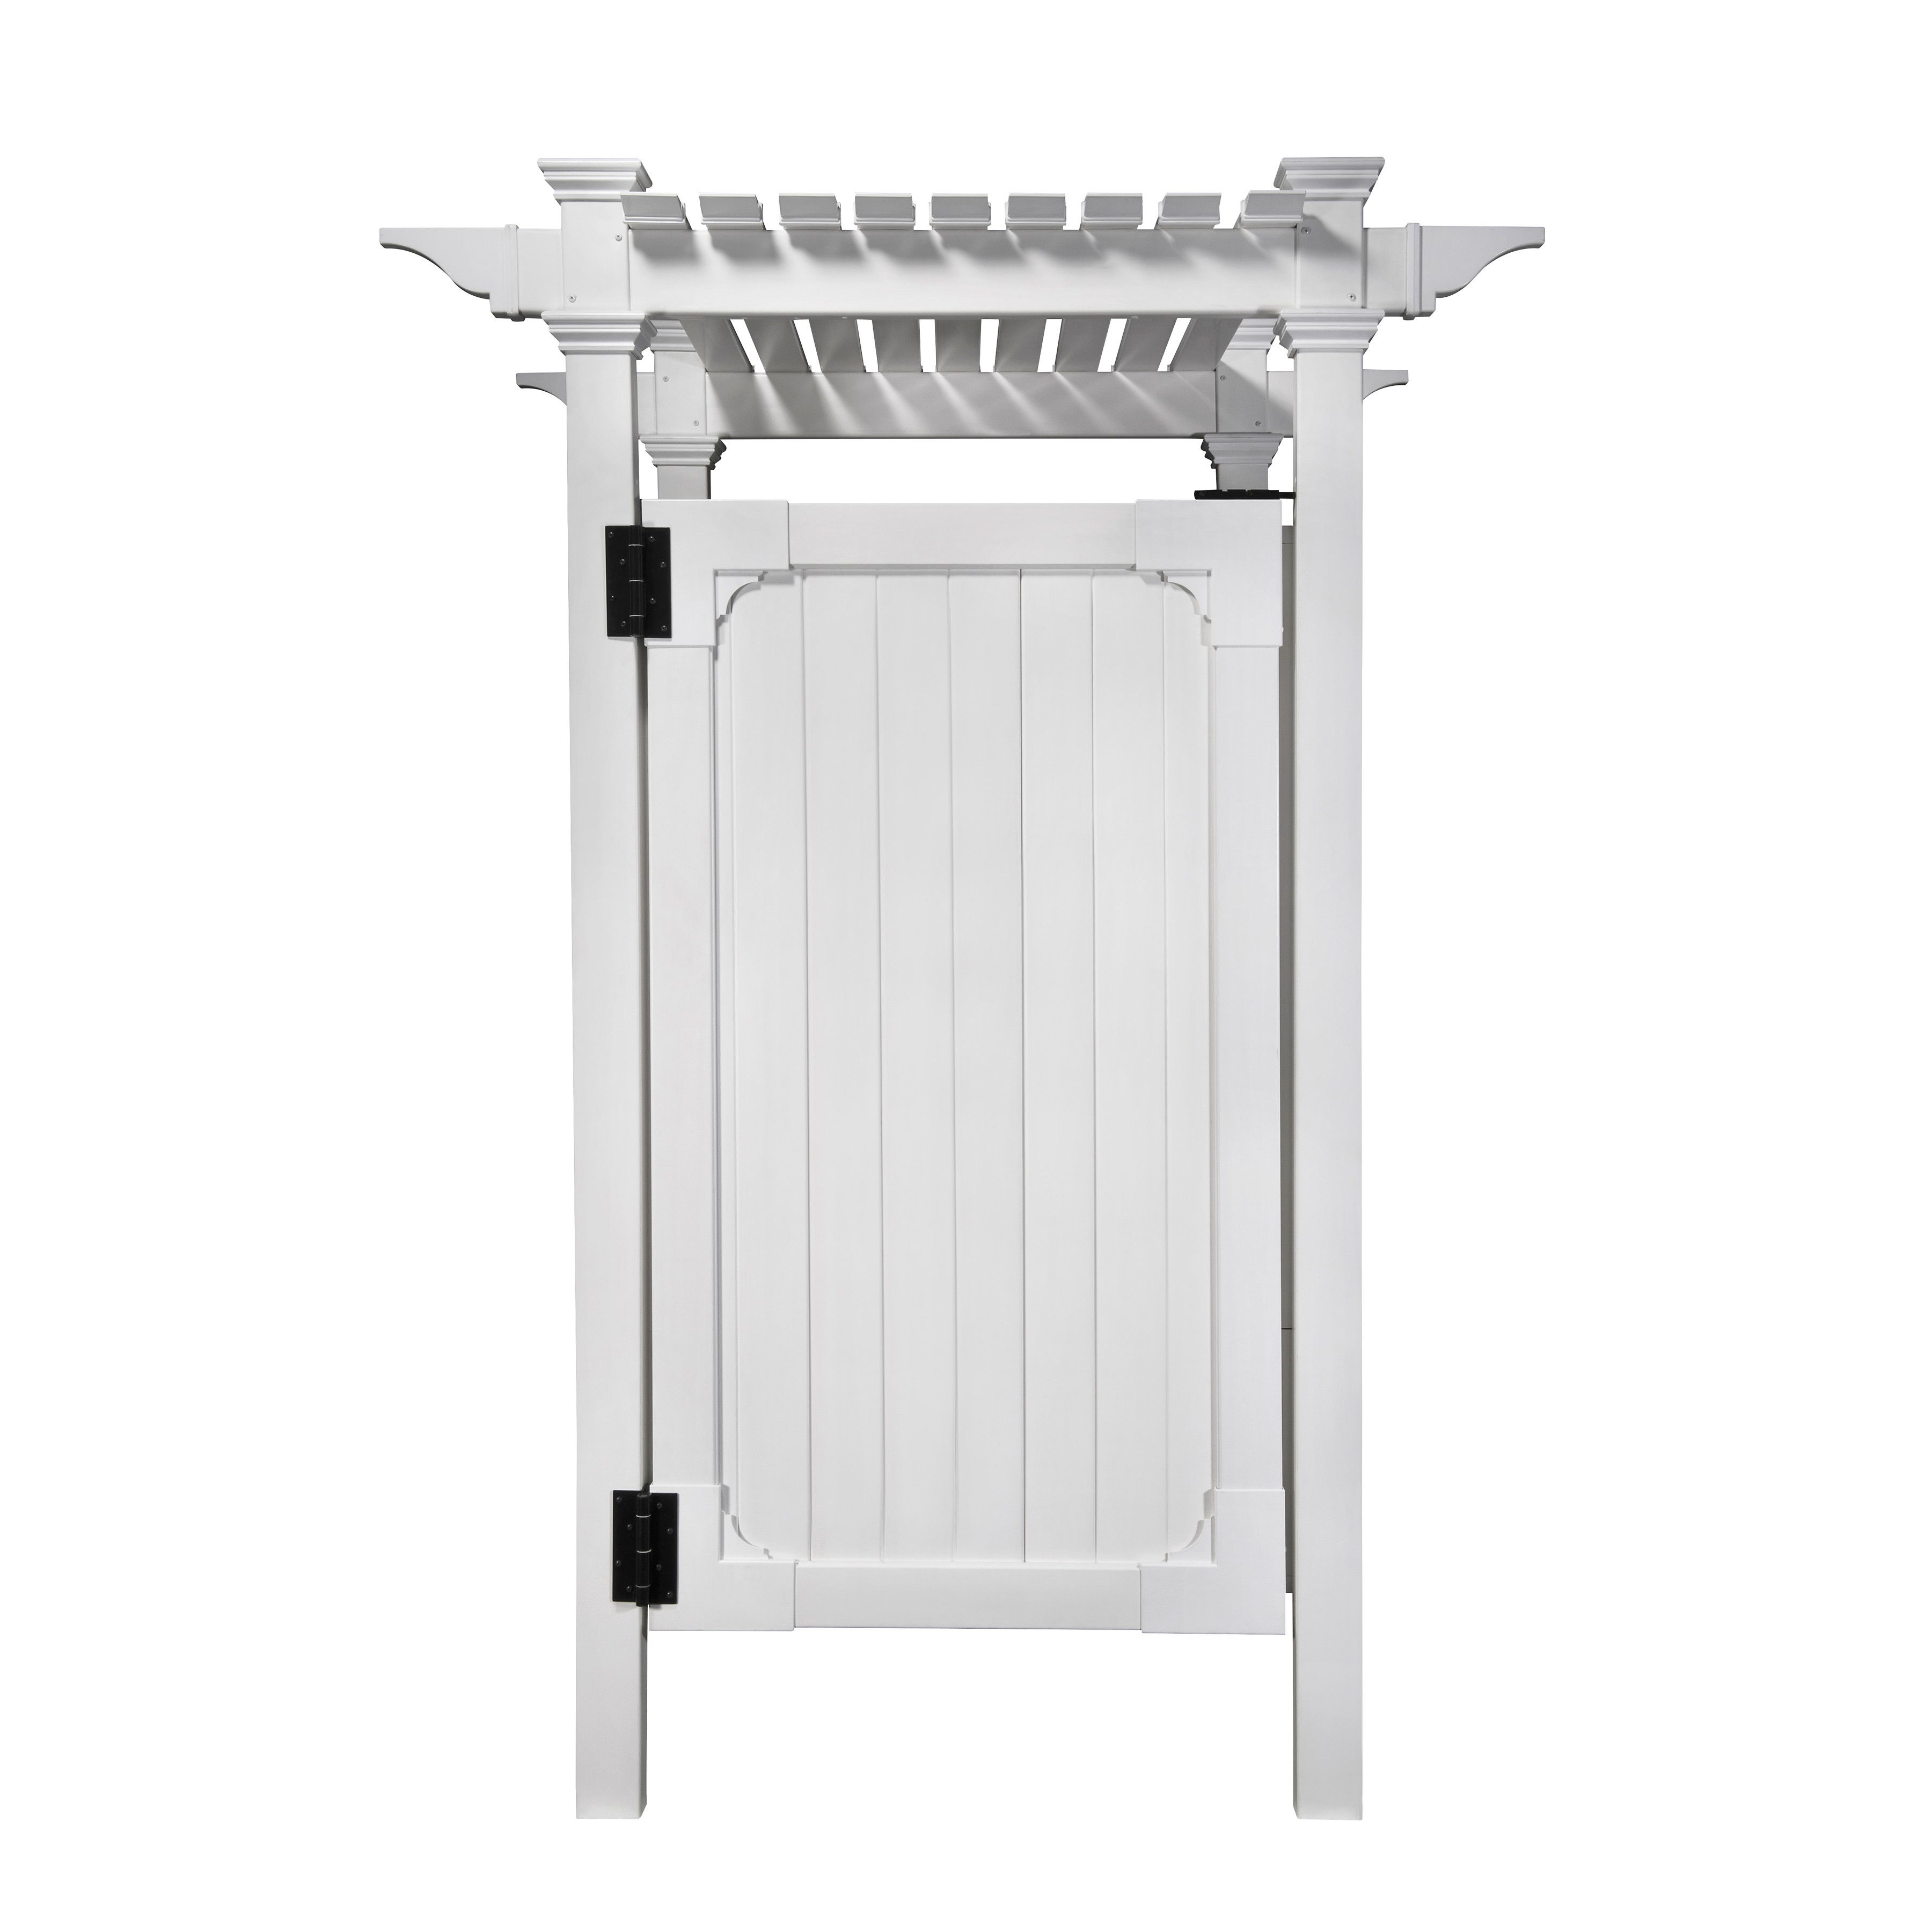 Zippity Outdoor Products In Ground Mount Outdoor Shower Enclosure